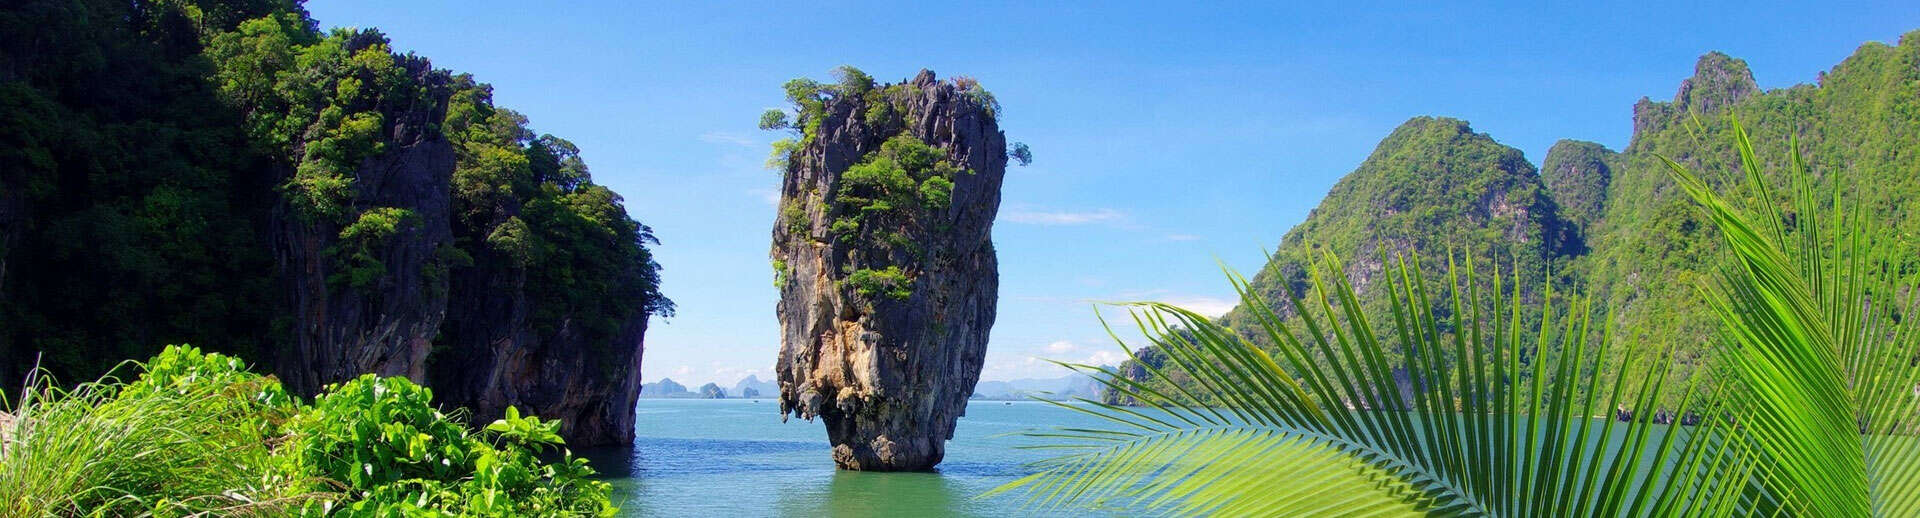 james bond island speedboat from phuket